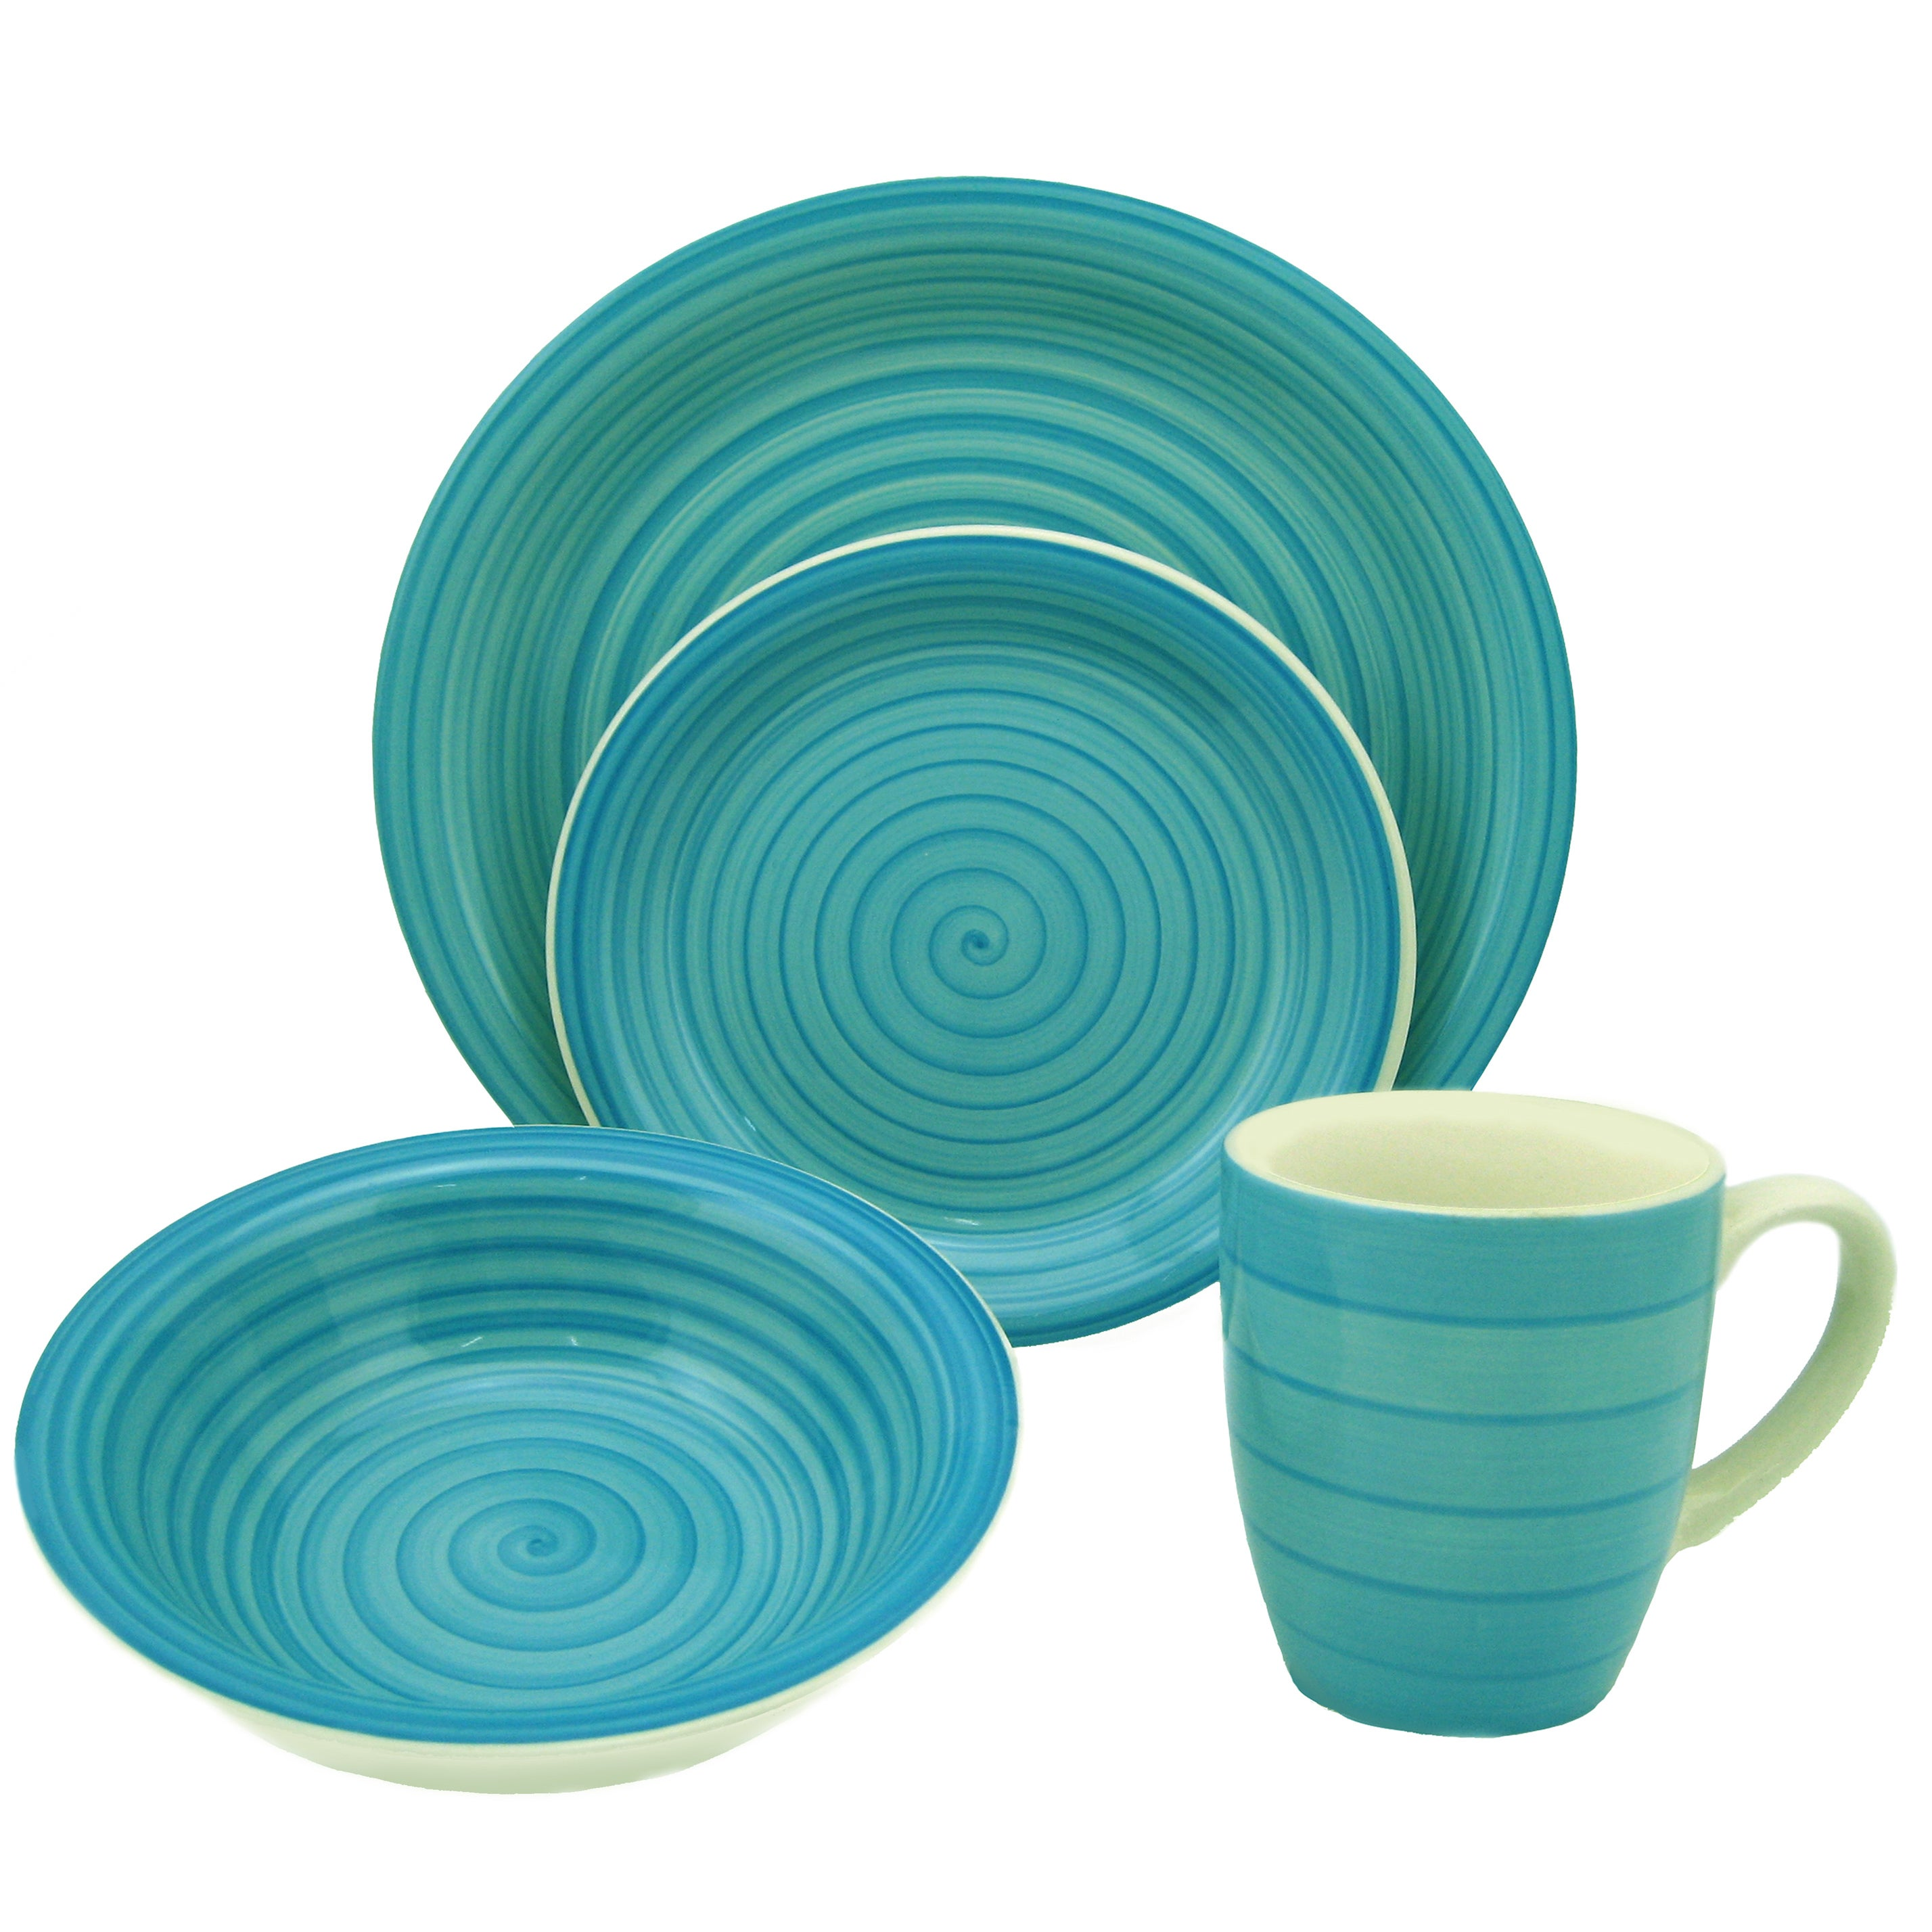 Shop Lorren Home Trend 16-piece Blue Swirl Stoneware Dinnerware Set - Free Shipping Today - Overstock.com - 7784390  sc 1 st  Overstock & Shop Lorren Home Trend 16-piece Blue Swirl Stoneware Dinnerware Set ...